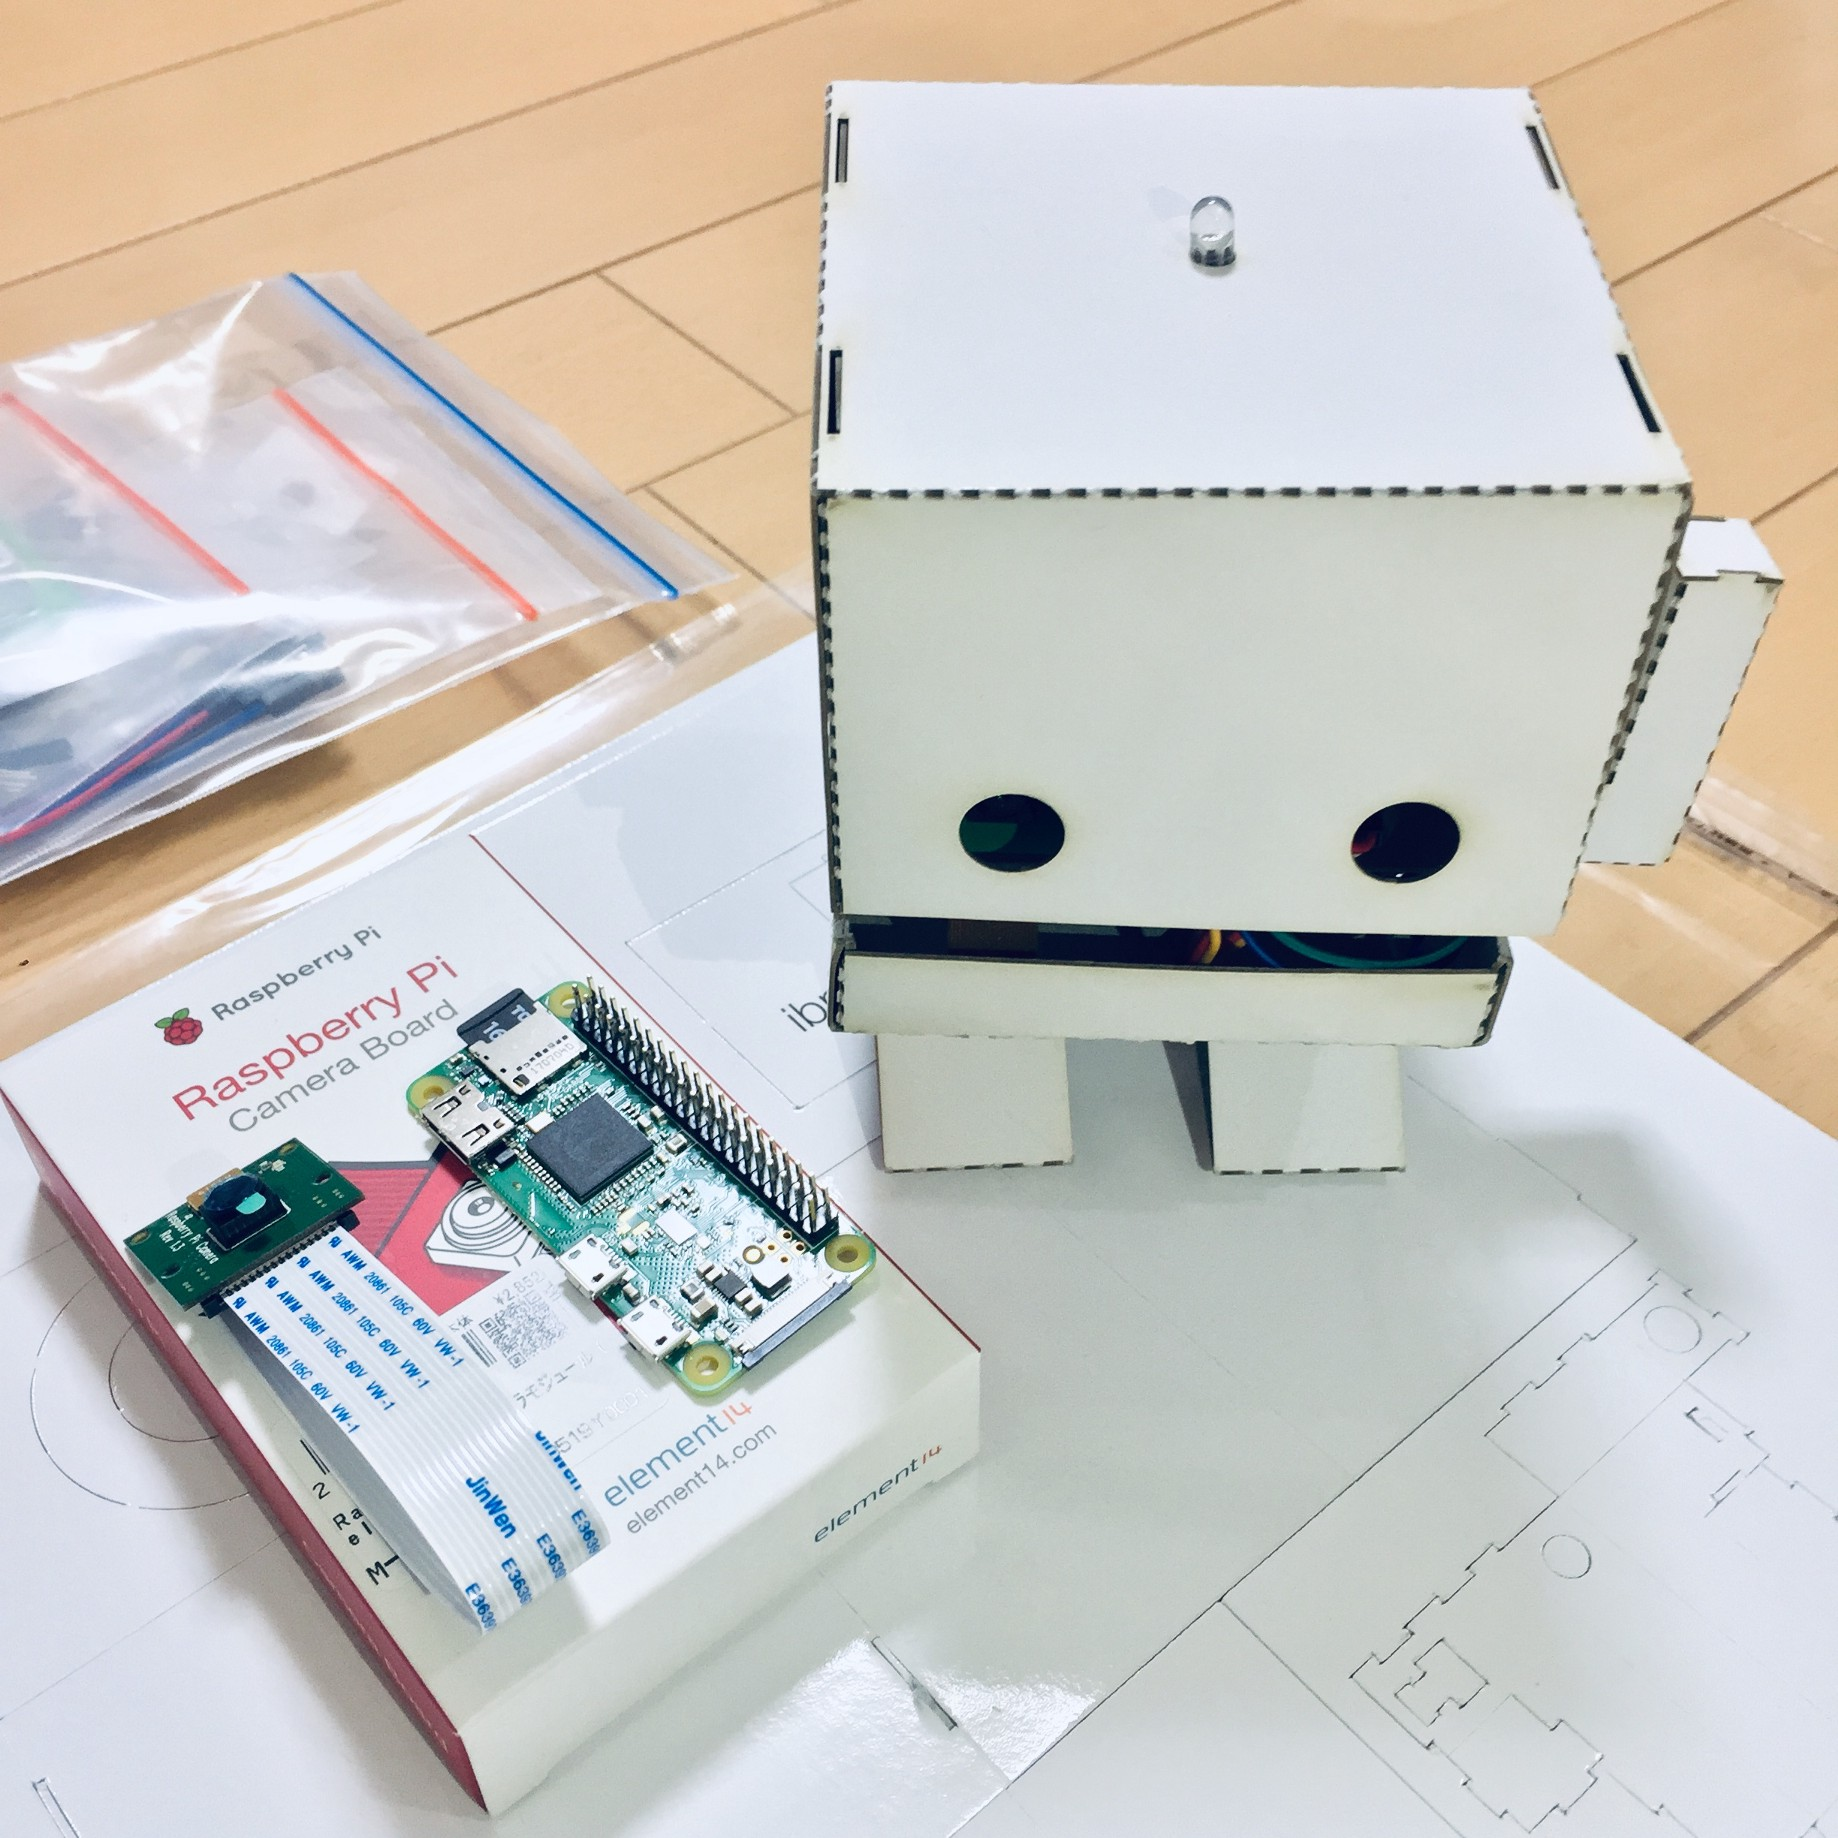 TJBot Zero, a cardboard robot using AI technologies